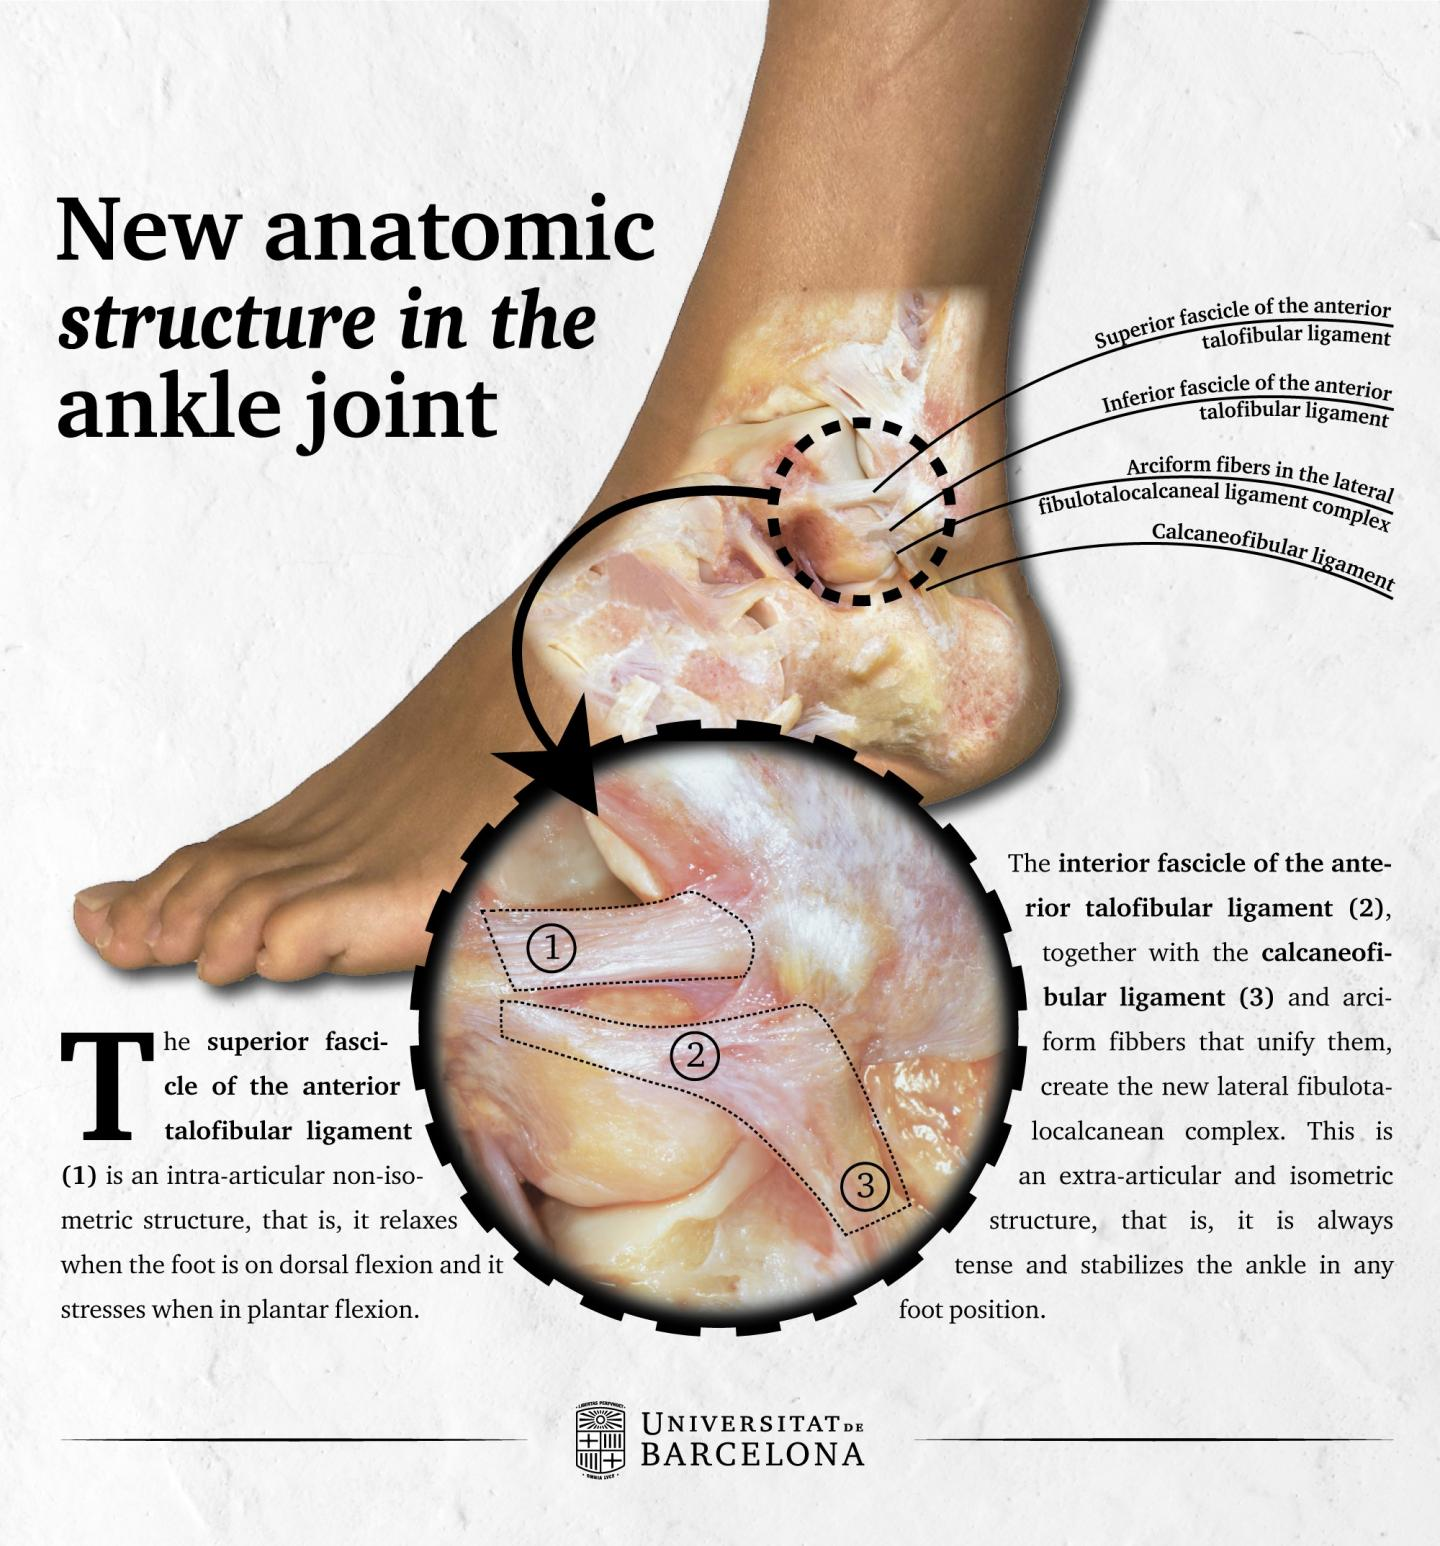 New Anatomical Structure Described in the Ankle Joint